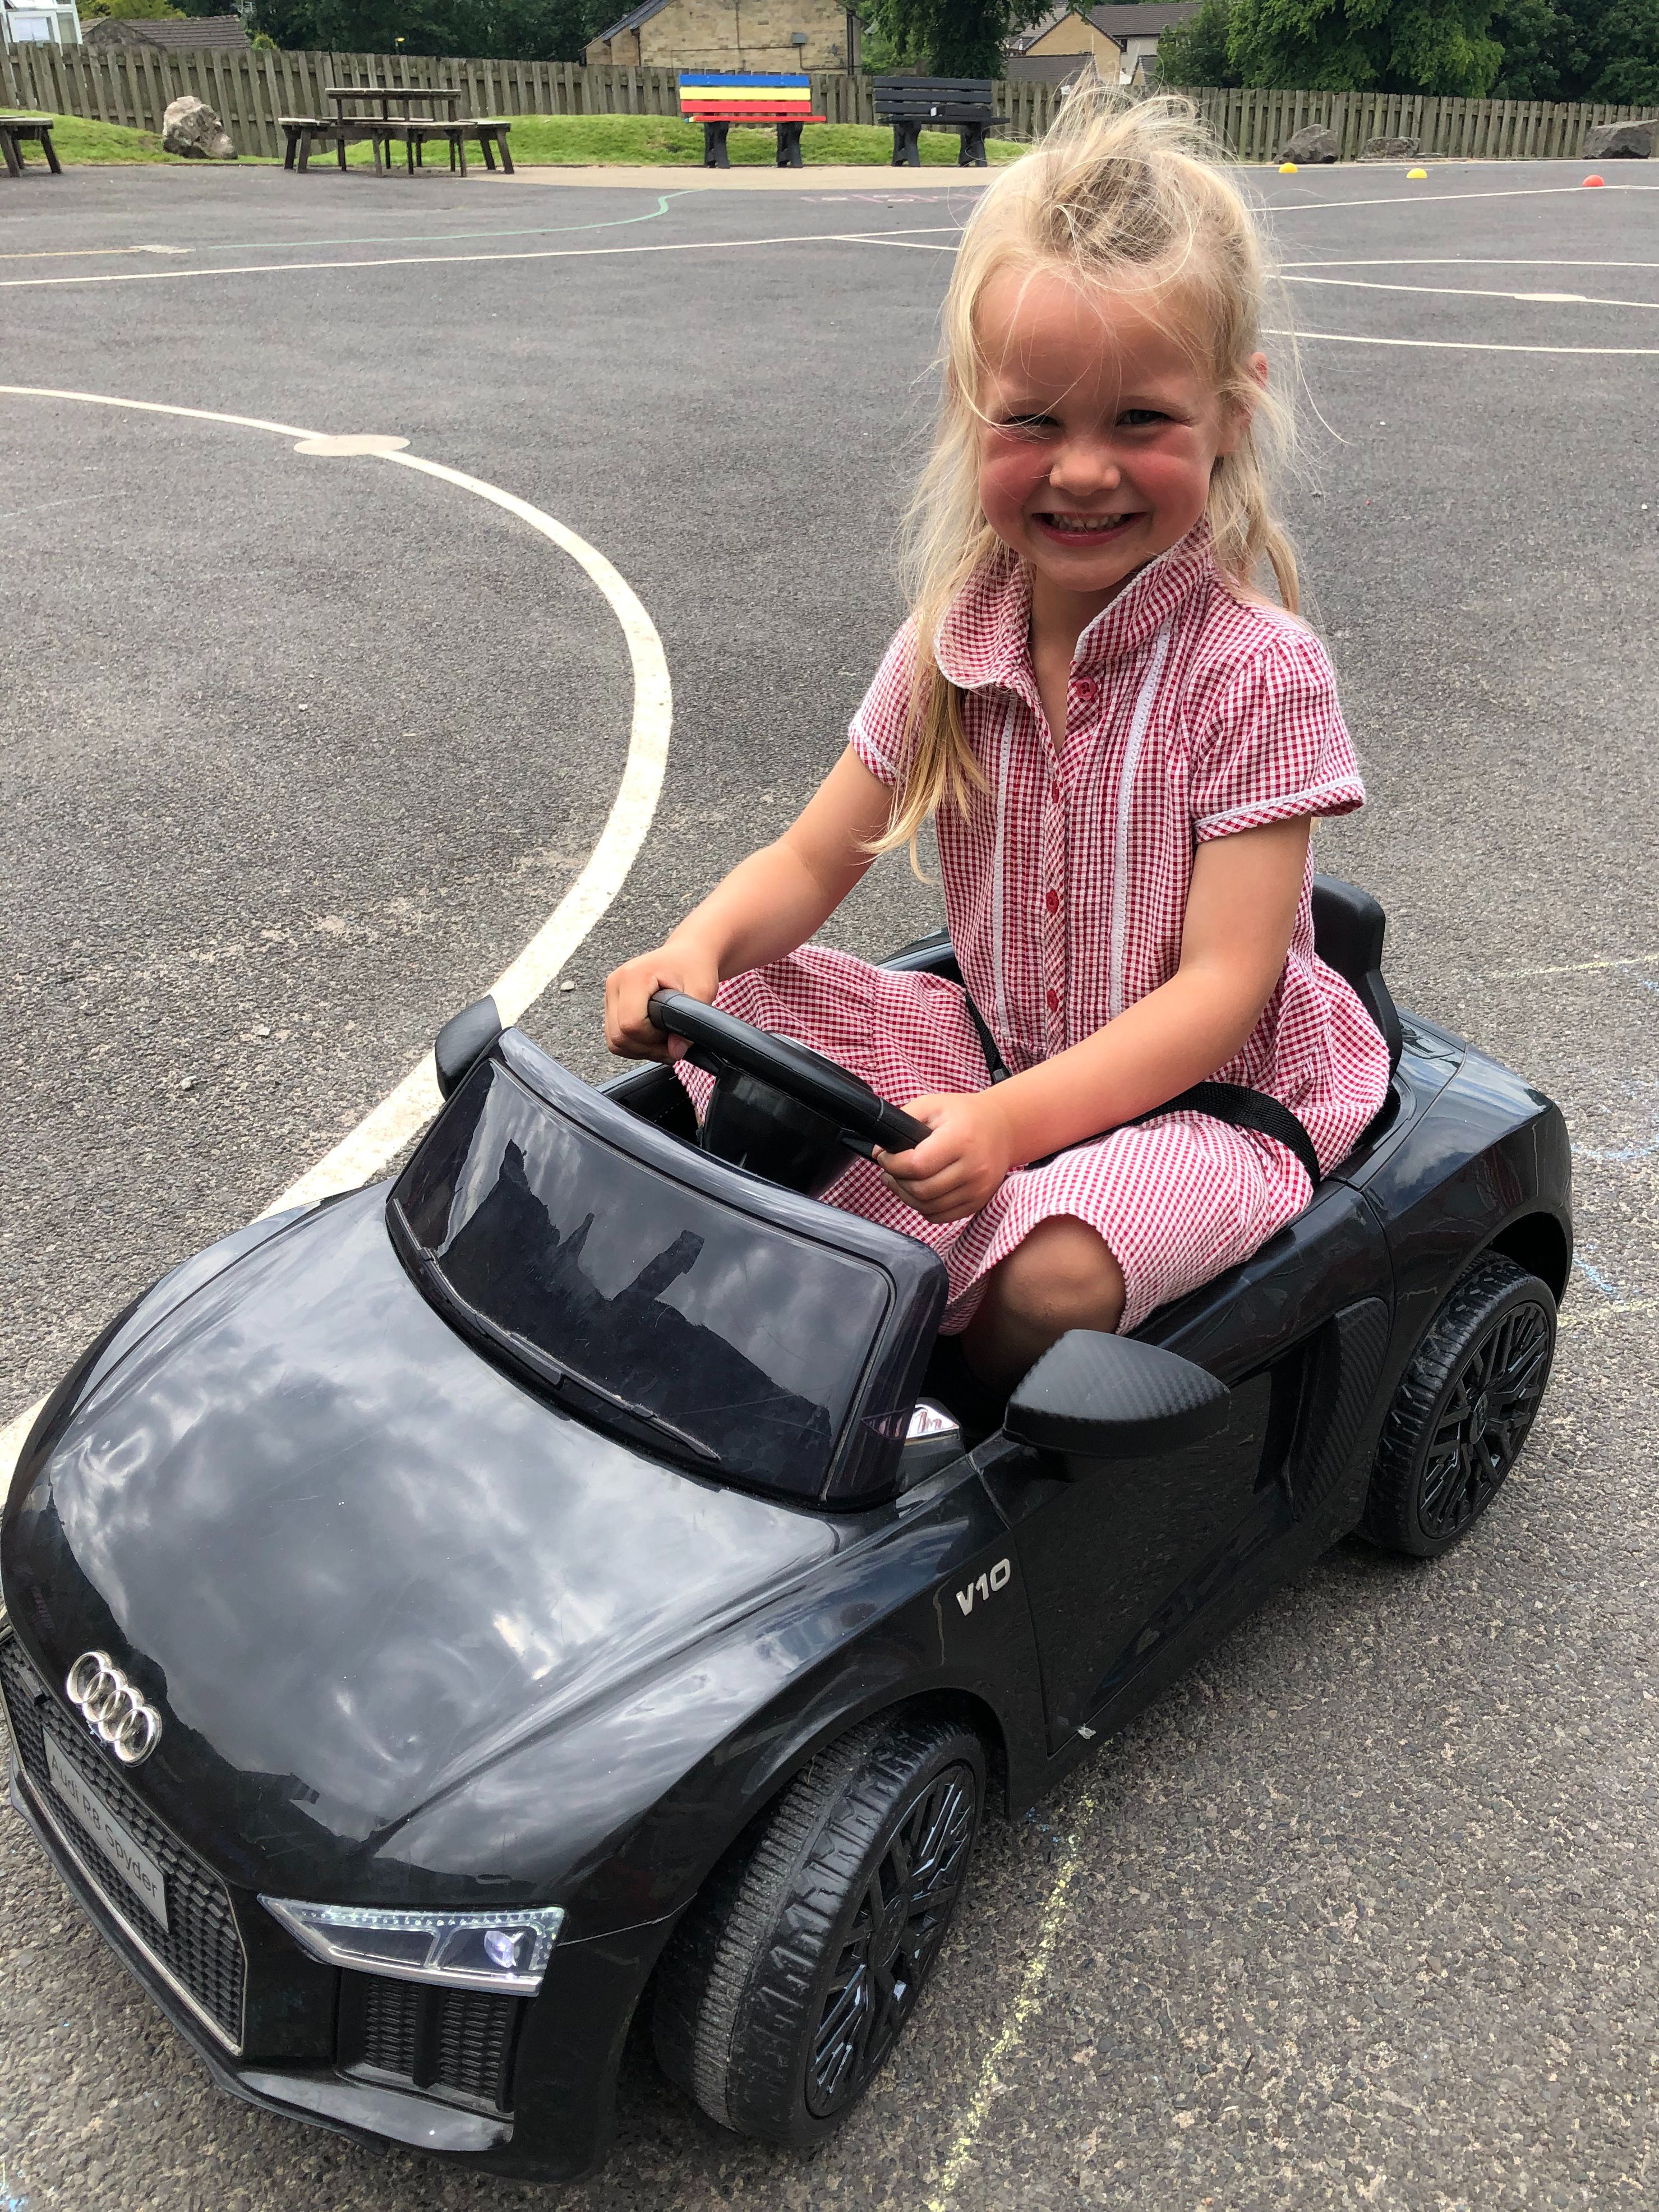 Girl on an Audi R8 toy